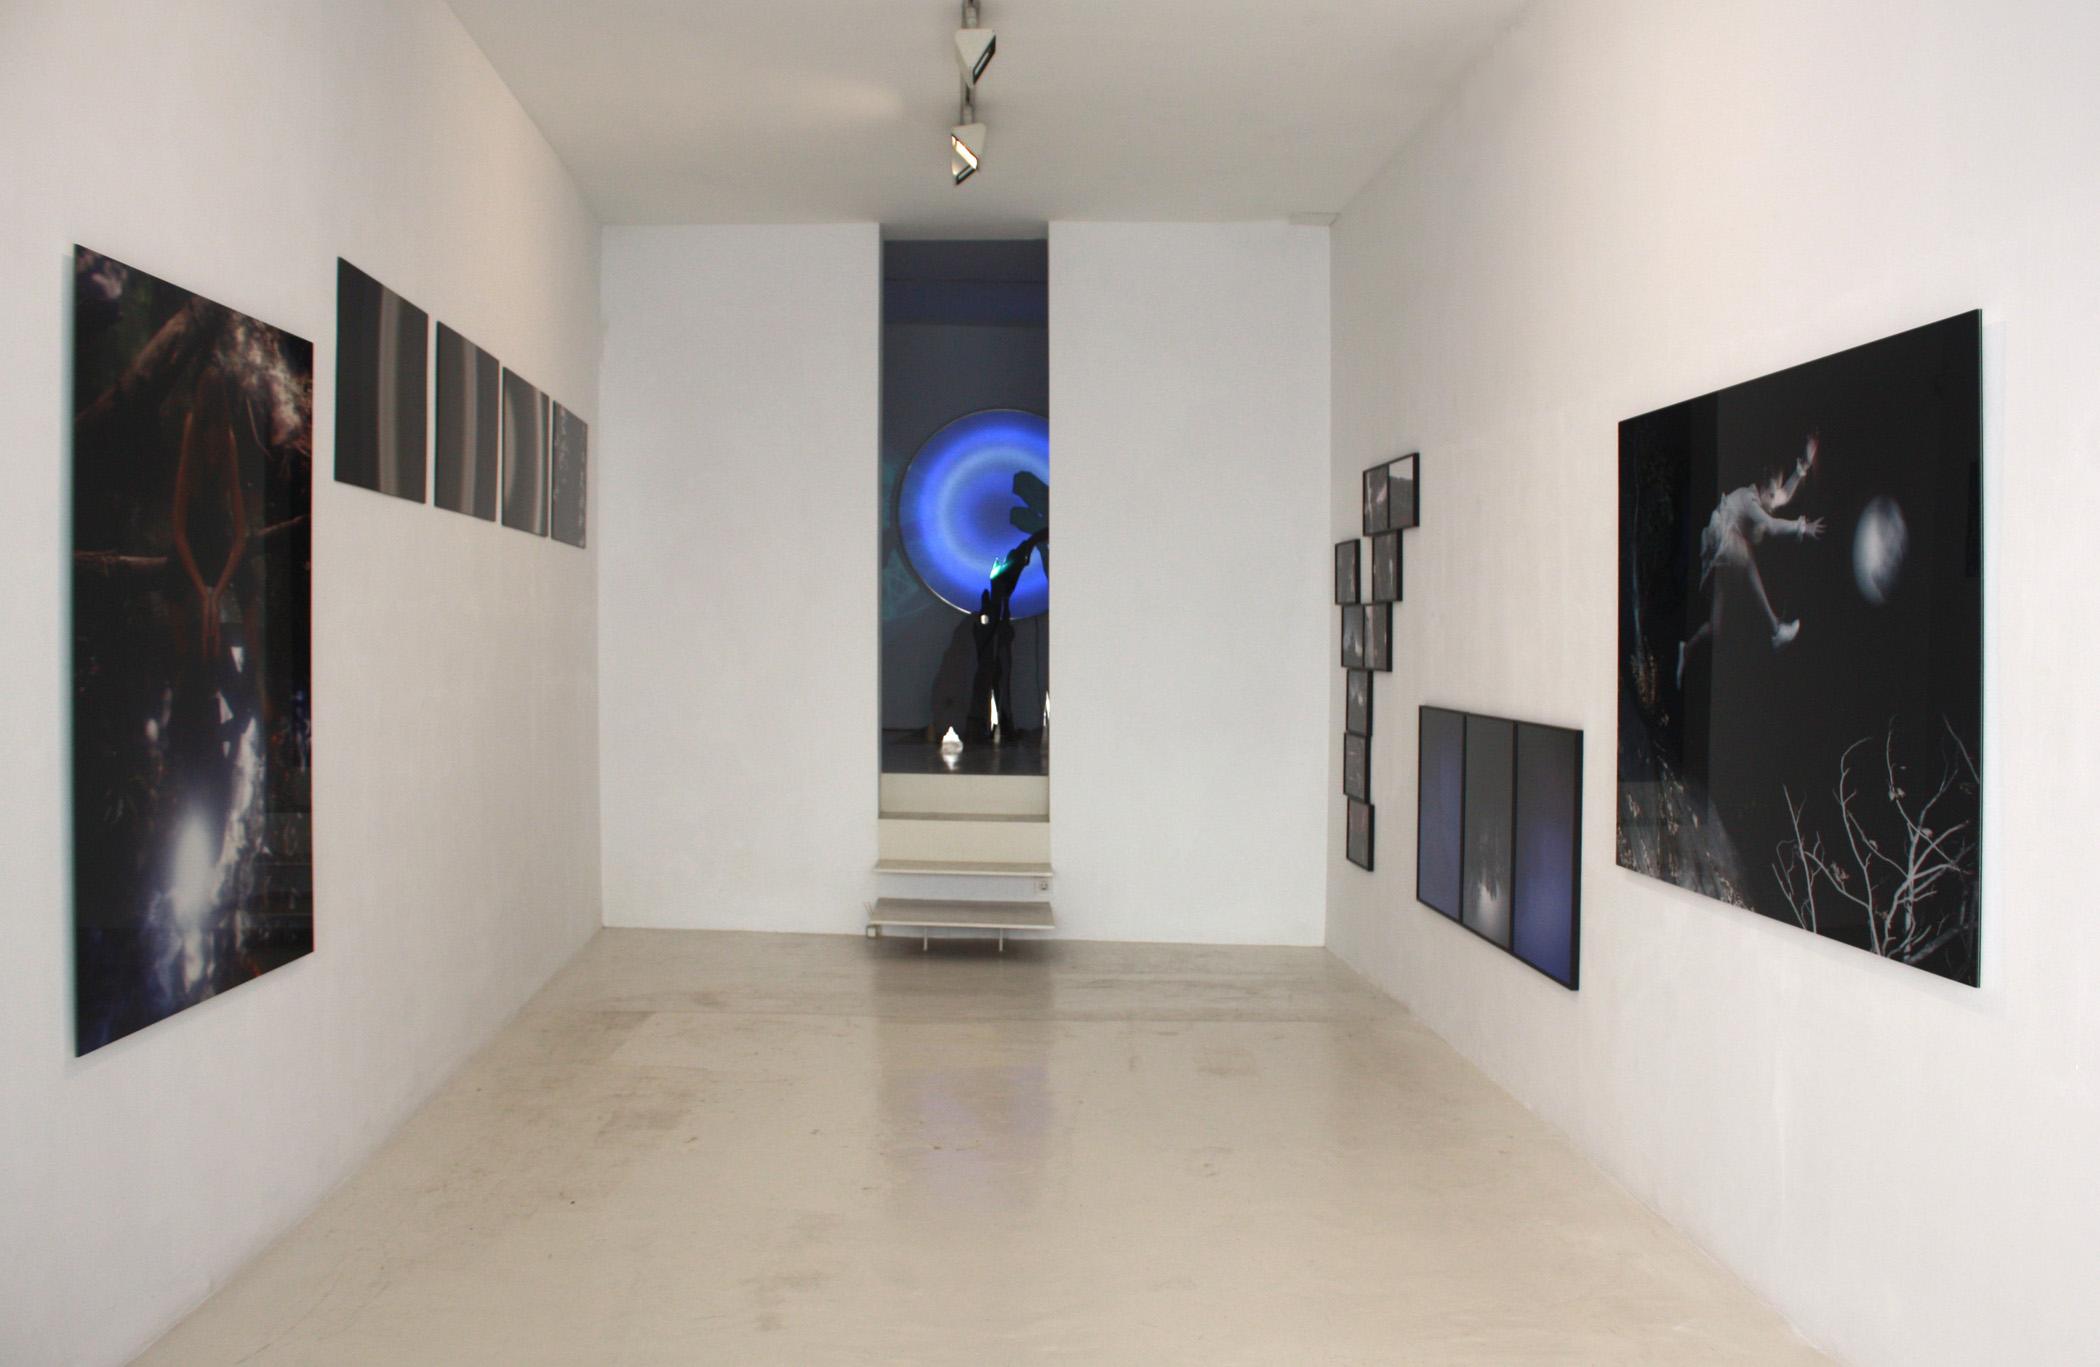 Exhibition view from Tim White-Sobieski, 2013